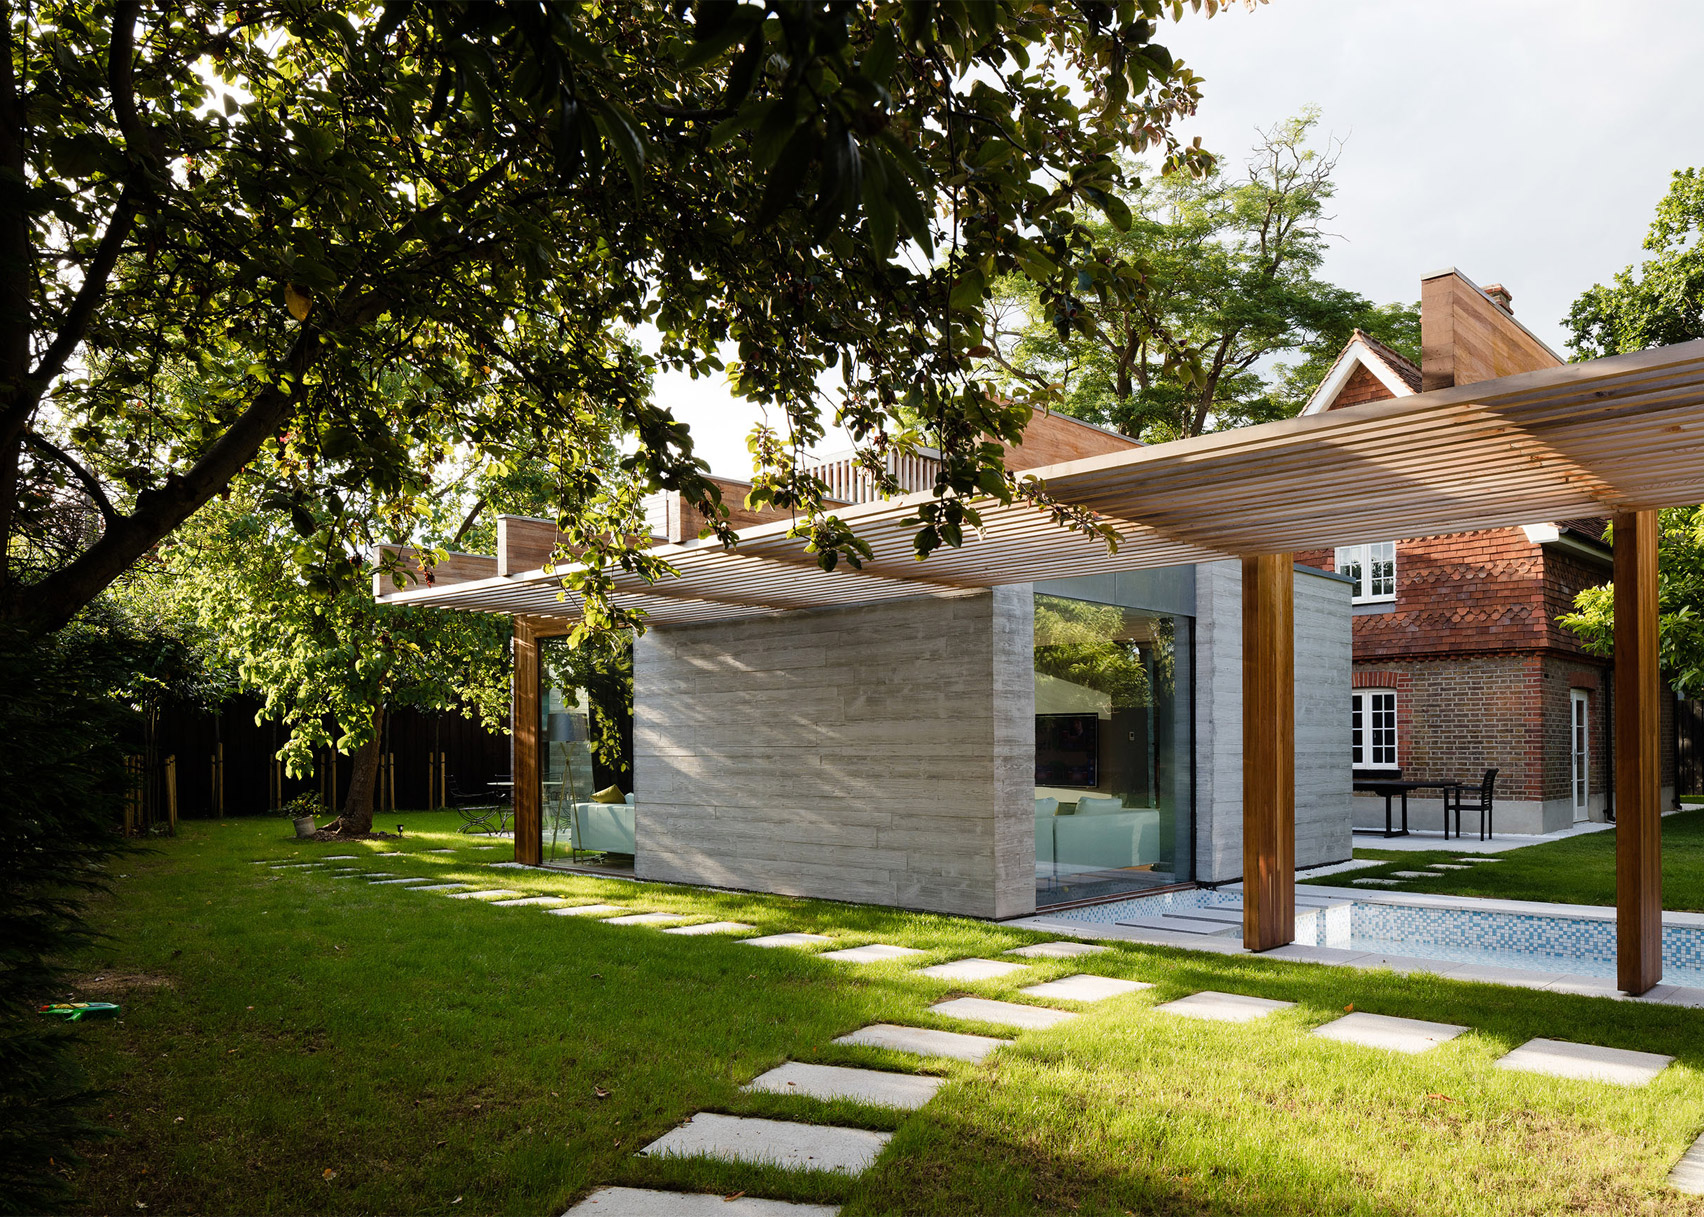 McGarry-Moon Architects adds concrete, timber and glass extension to a traditional gatehouse